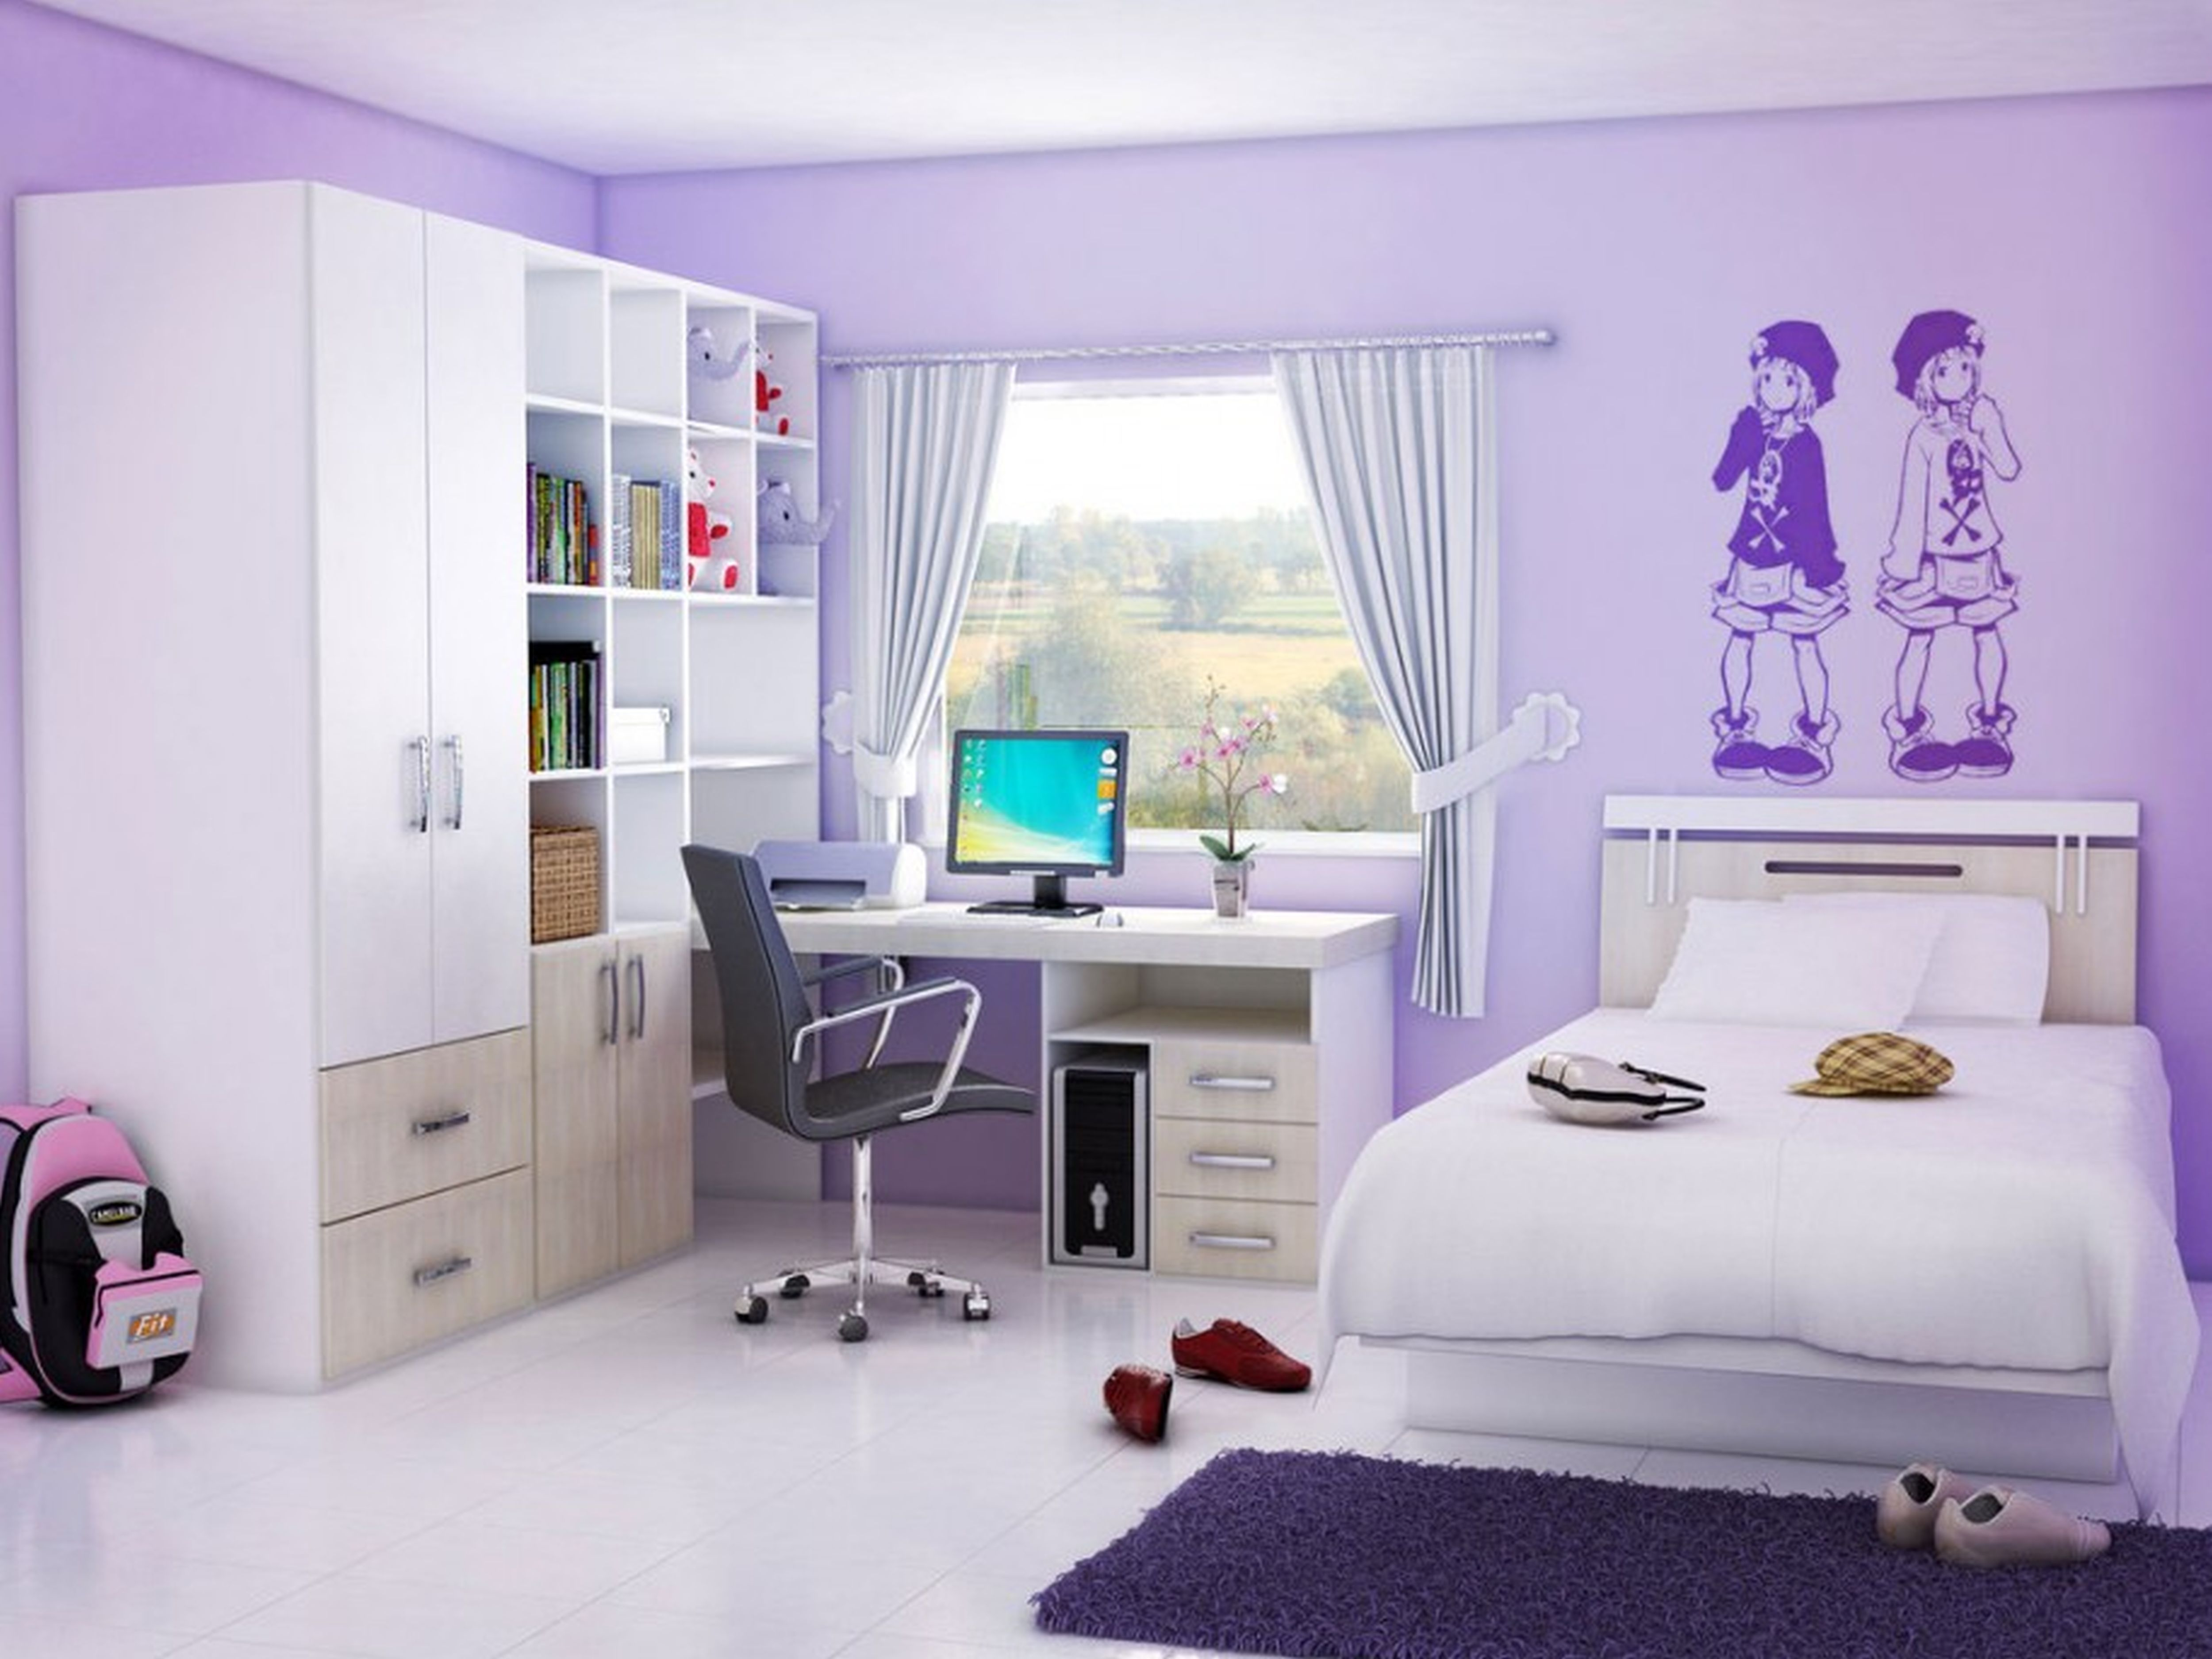 Girl Bedroom Interior with Purple Lilac Color